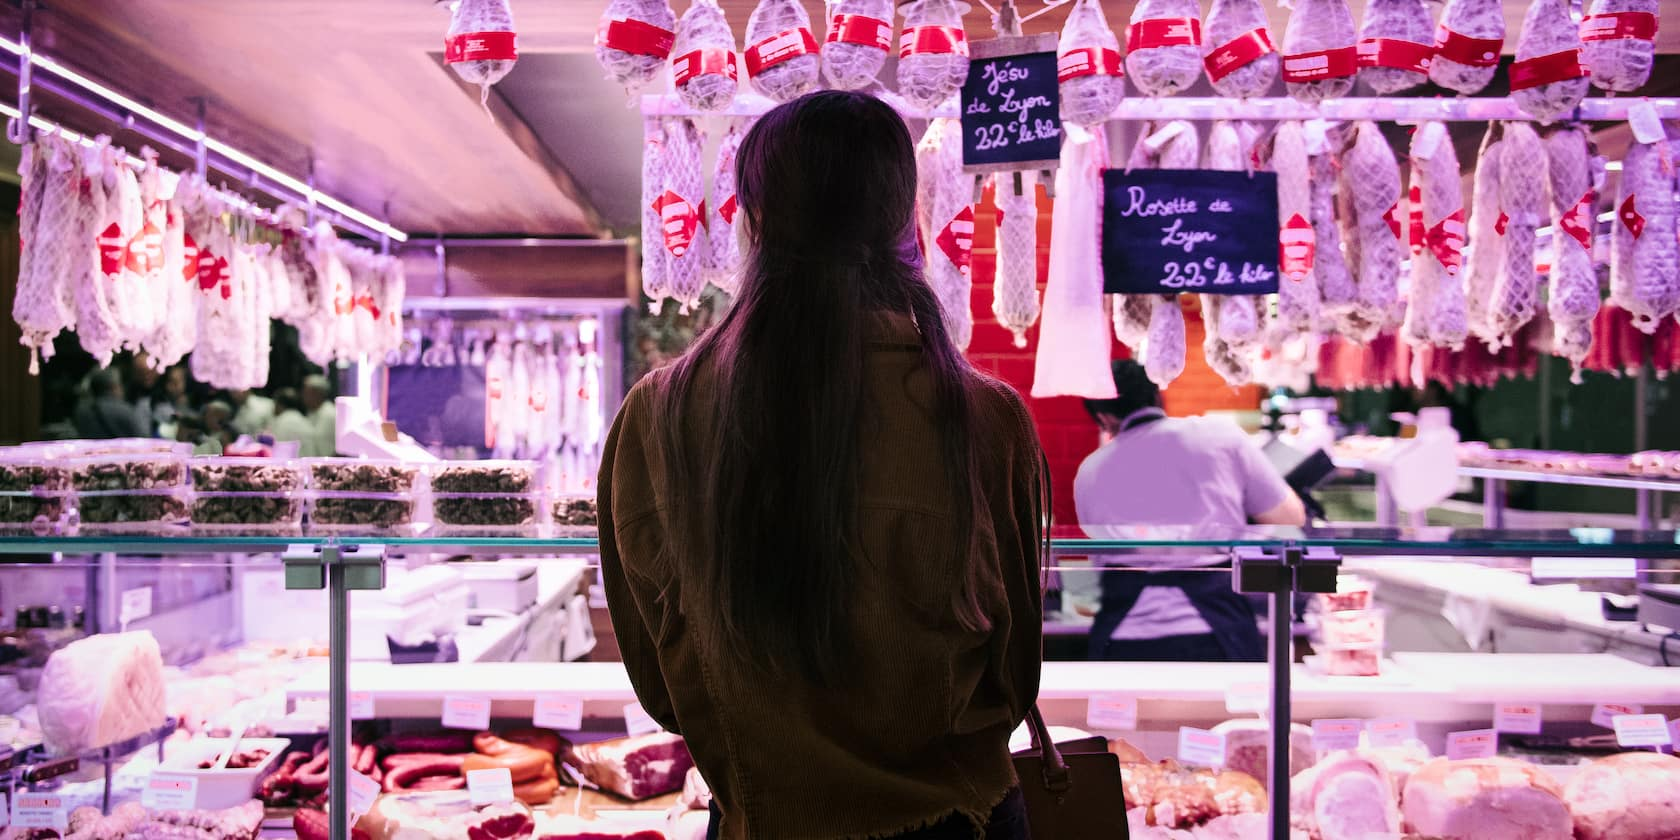 A woman looks at the display in a food stand at Les Halles market